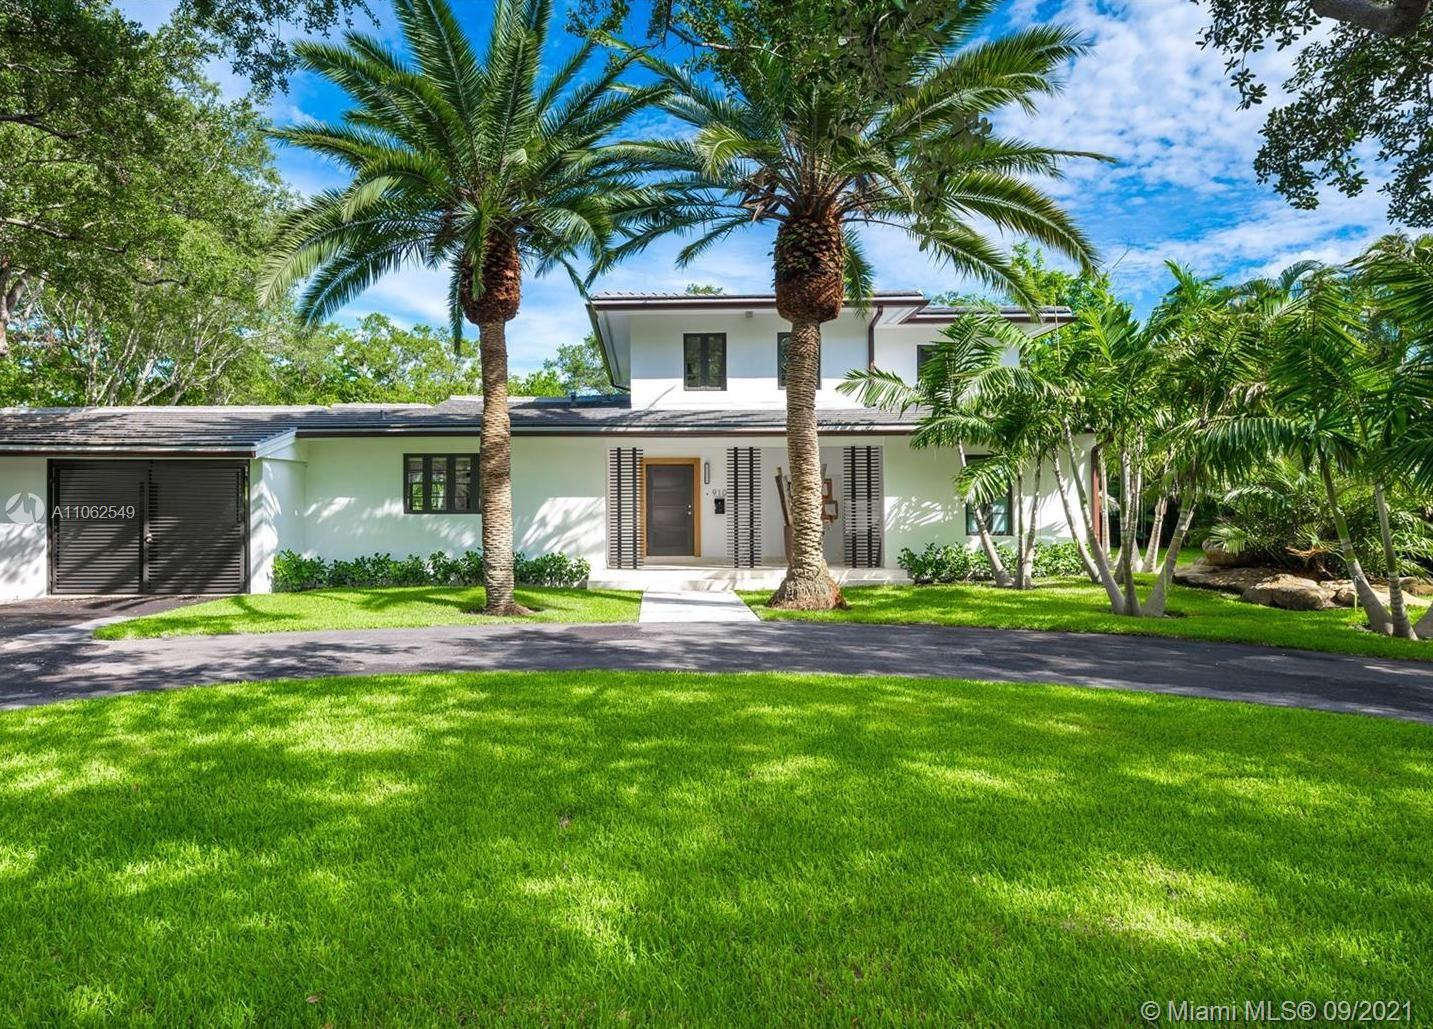 One of a kind opportunity to live in an unique, completely renovated to high standards home. Located in a quiet area of Coral Gables. Spacious two-story home on a 17,148 Sqft featuring 4 Bedrooms, 3.5 new Bathrooms with a large open floor plan, porcelain floors thought out the 1st floor, formal living & dining room, family room. Open  modern kitchen, Monogram professional  appliances,  new plumbing, new electrical, sound system, security cameras installed , 1 car garage. Large terrace and landscaping surrounding a beautiful pool area, tastefully designed for comfort, functionality, and entrainment. Home is close to shops, restaurants, parks, and great schools.